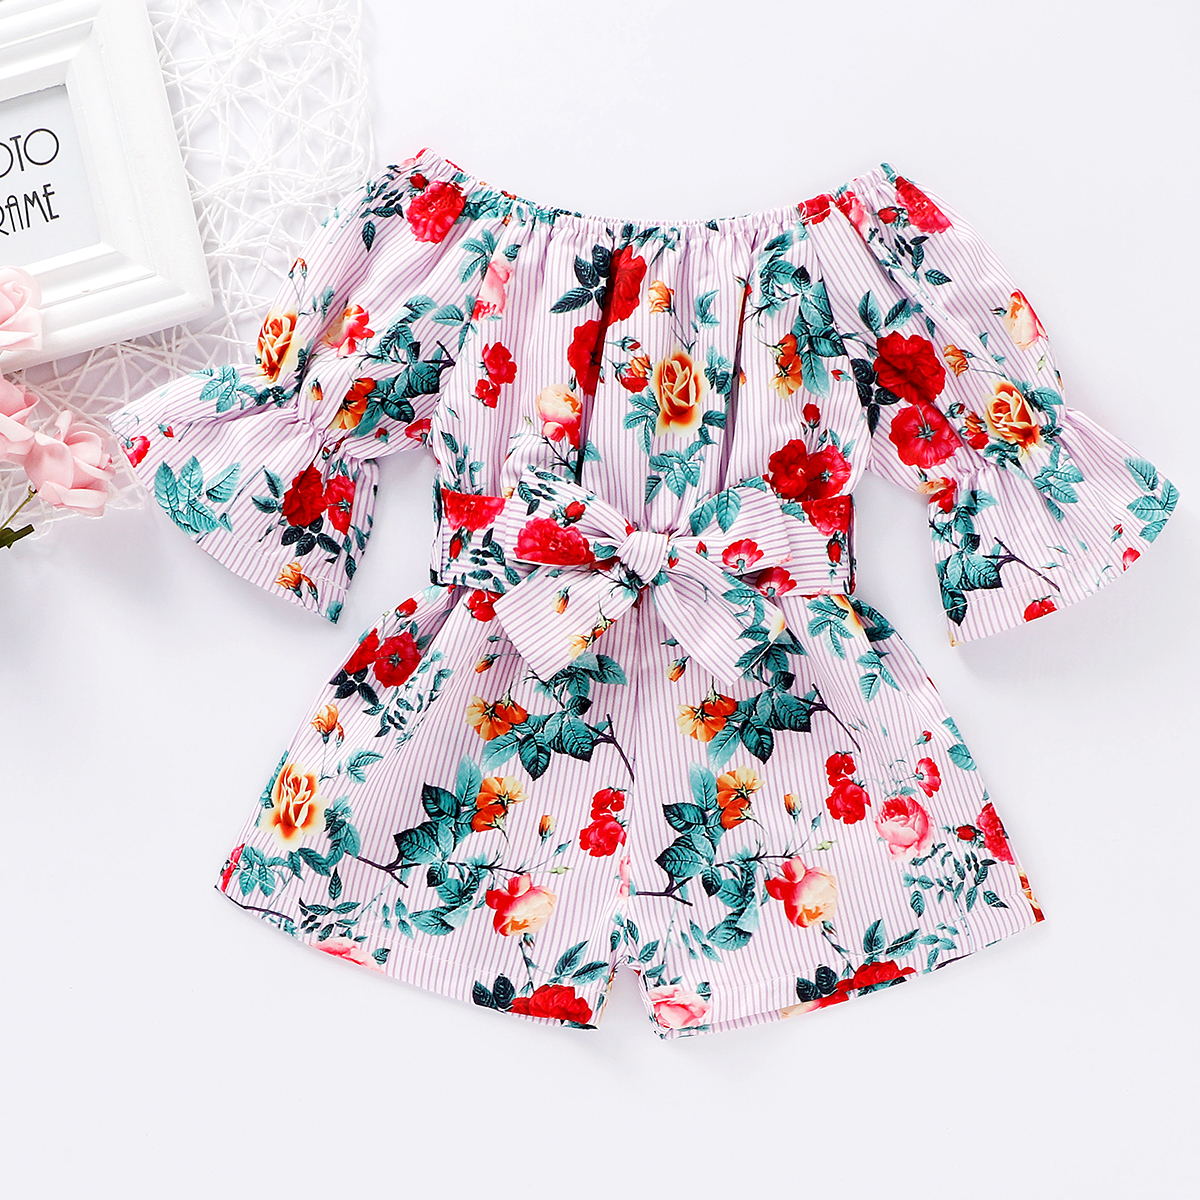 Emmababy Toddler Baby Girl Clothes Summer Off Shoulder Flower Print Short Sleeve Romper Jumpsuit One-Piece Outfit Summer Clothes